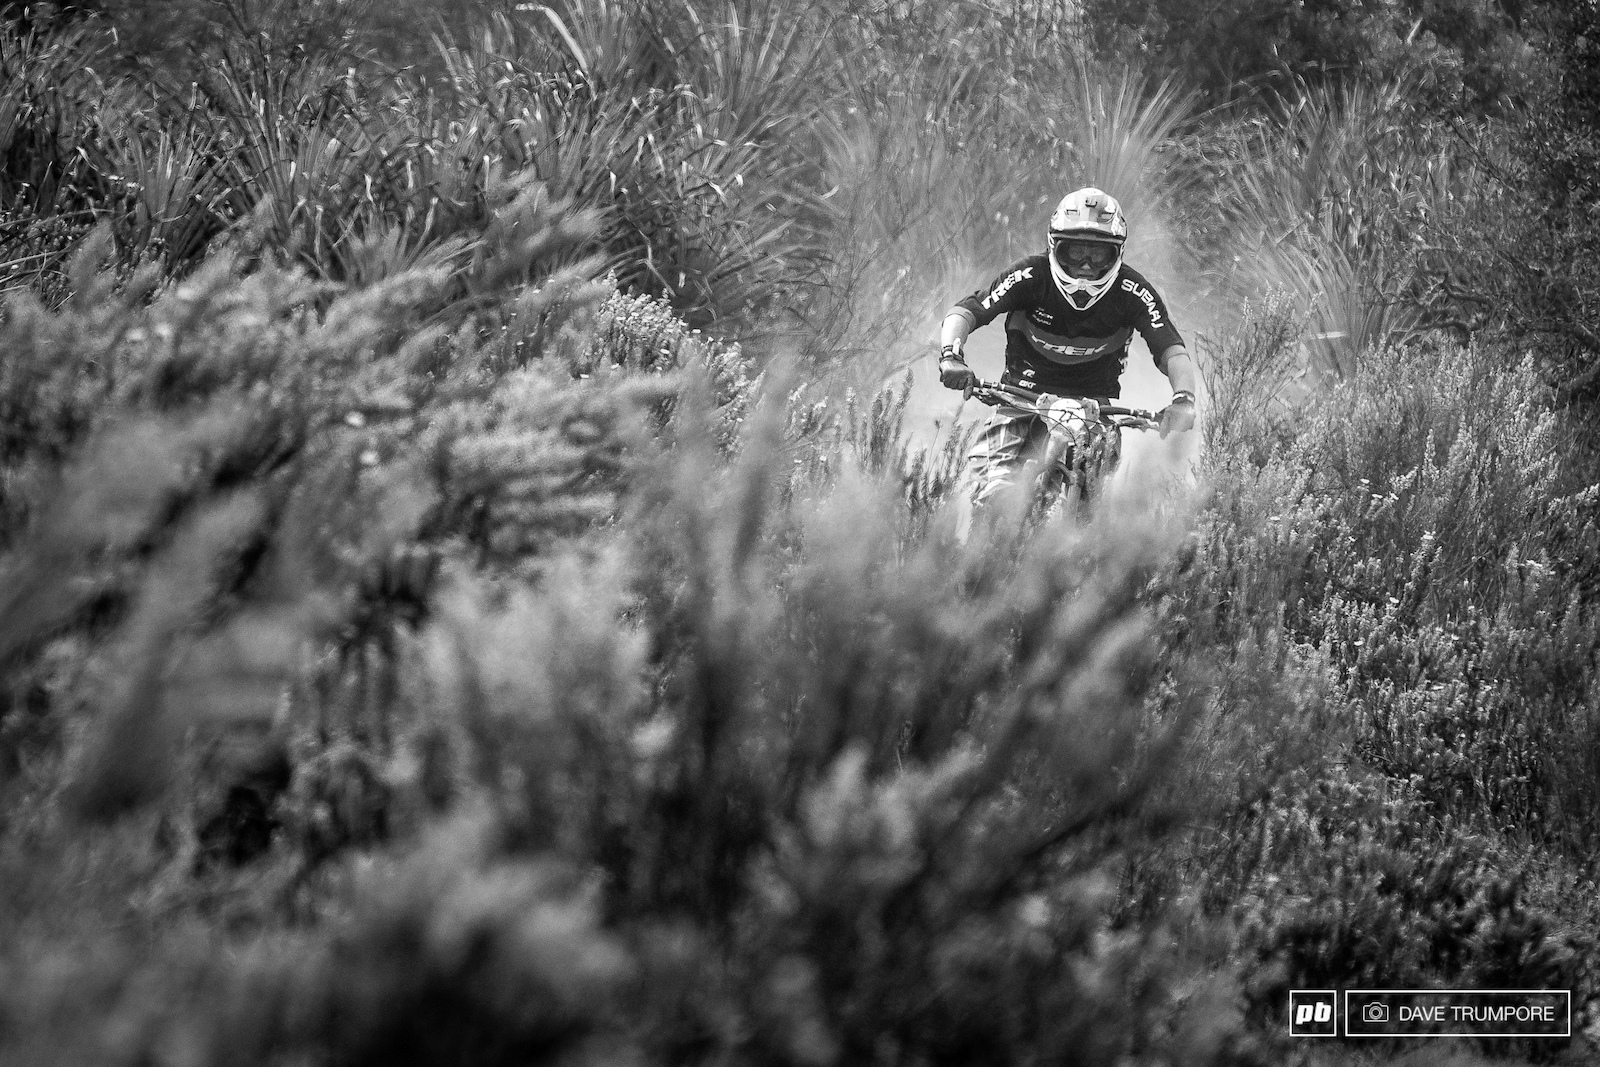 At 17 years of age Jeronimo Burns was the youngest rider in the race eventually finishing a vert respectable 13th.